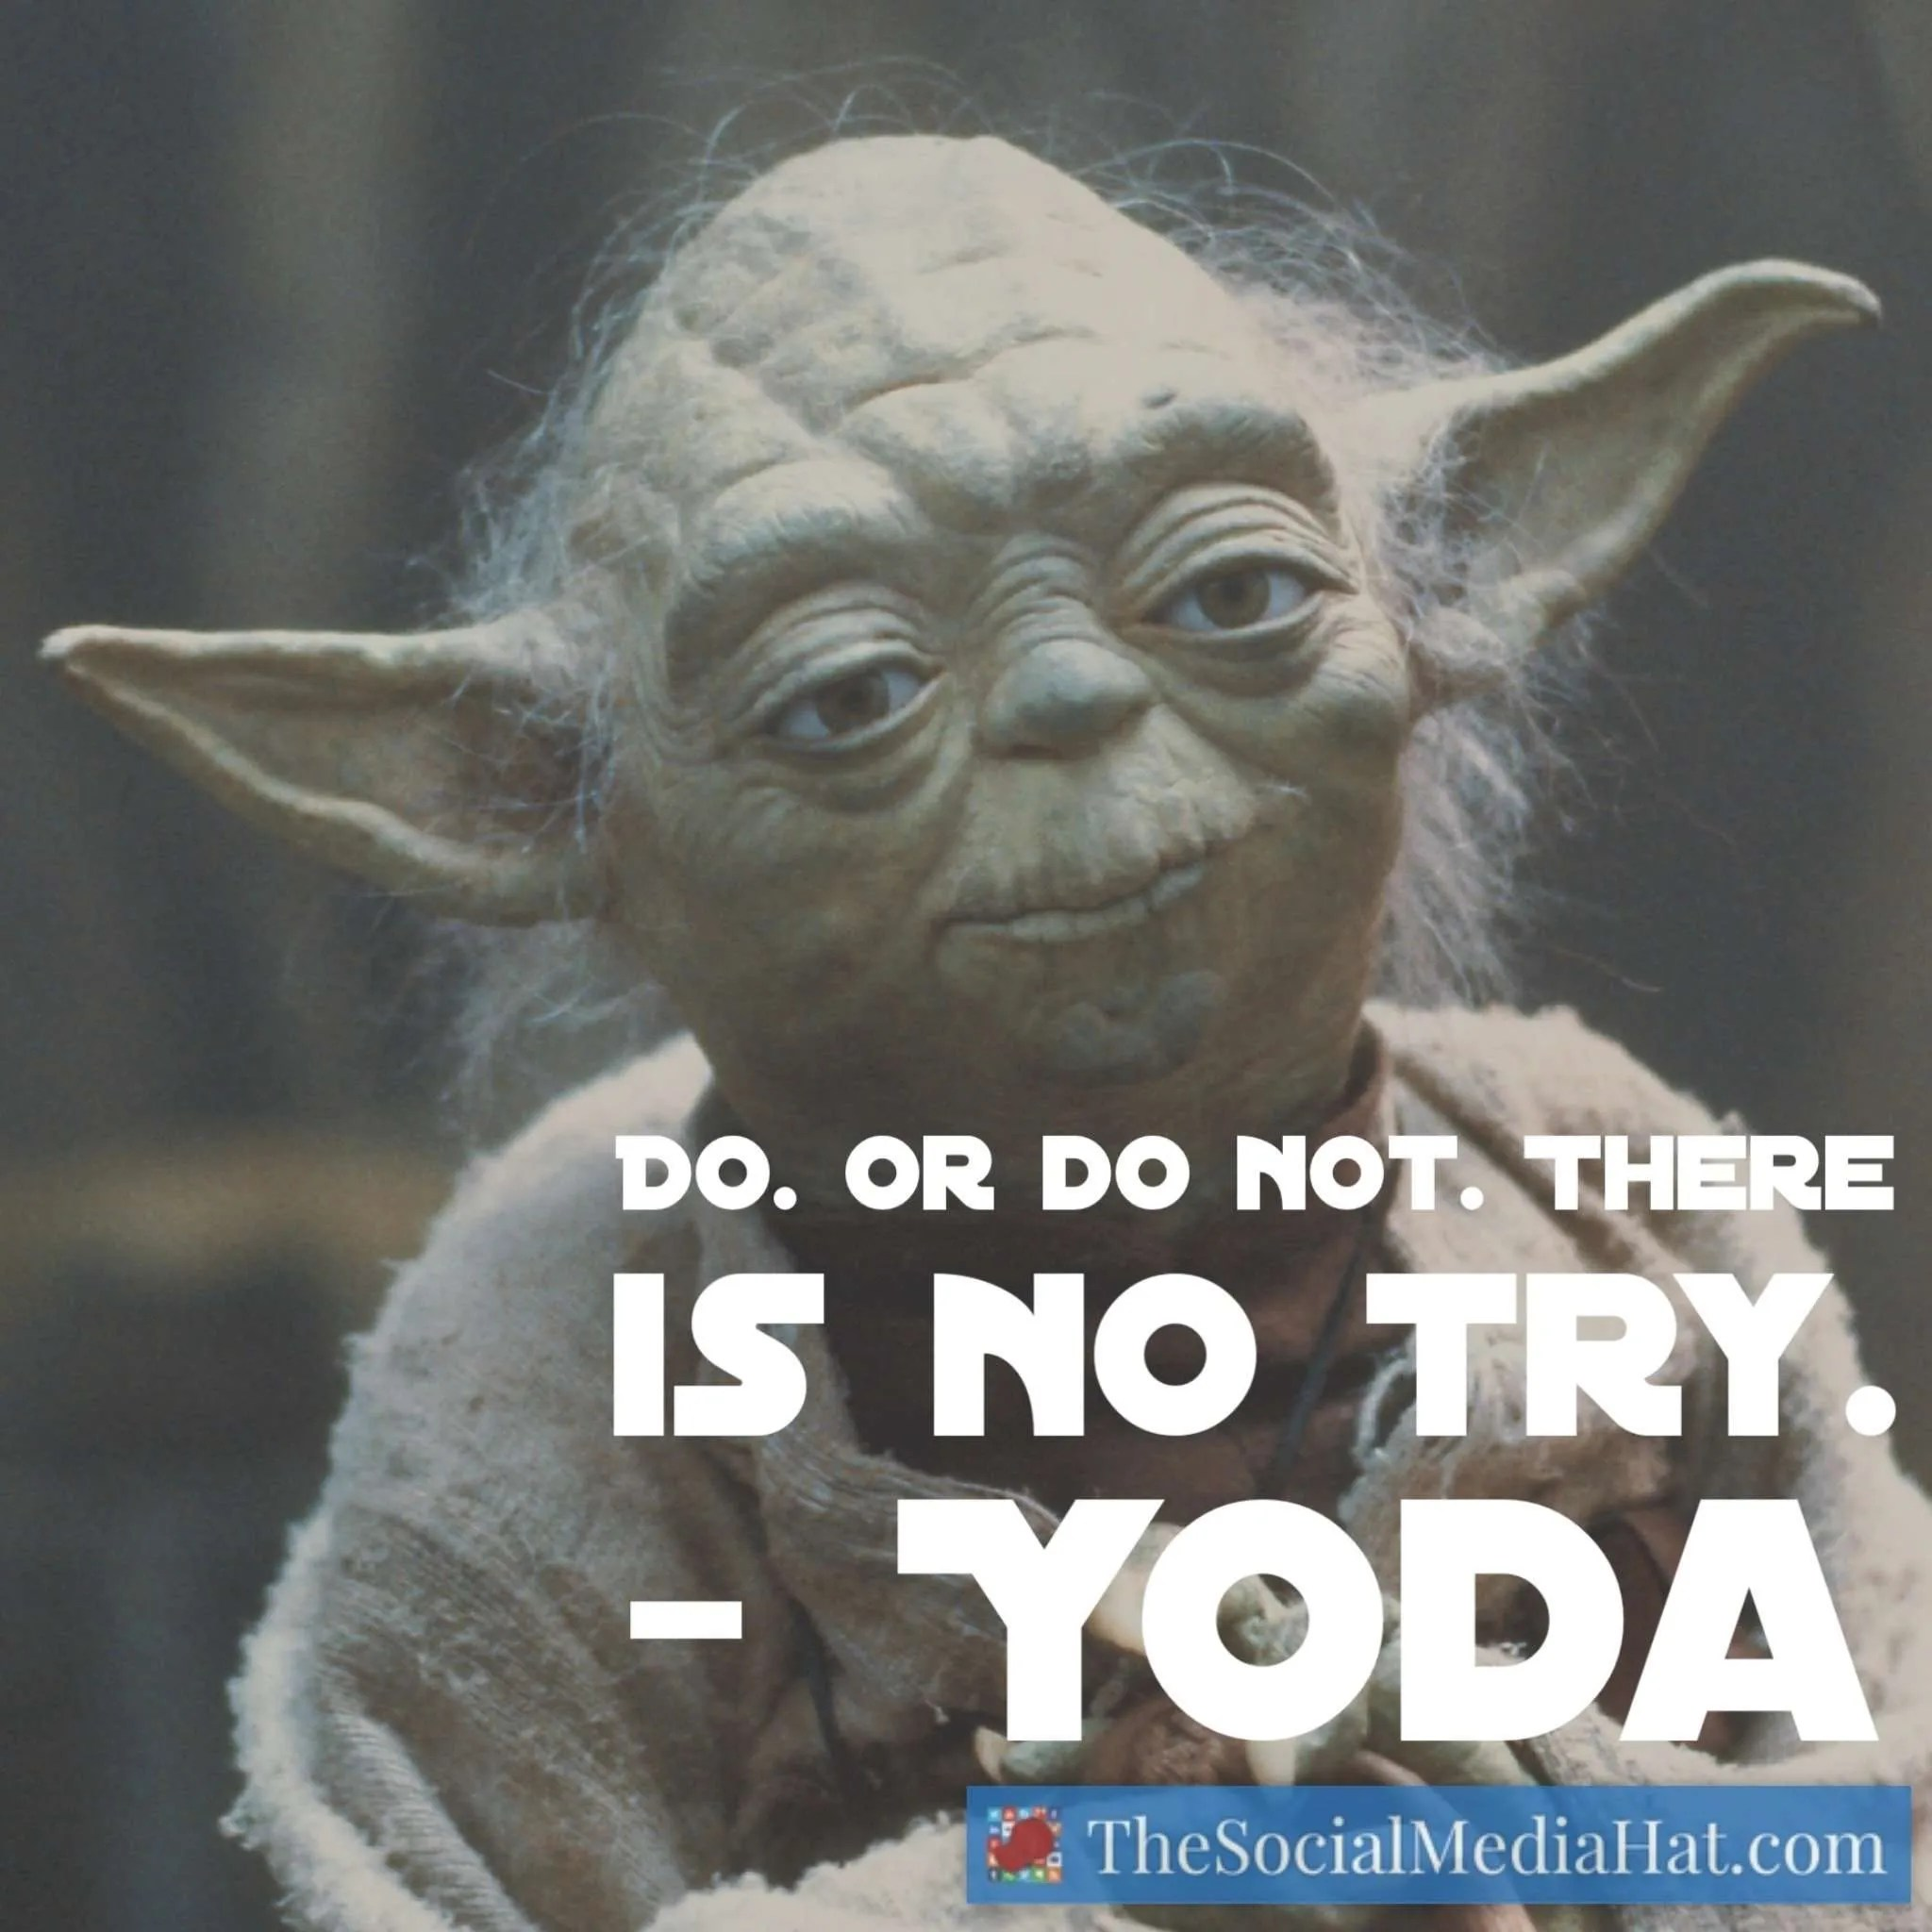 Do. Or do not. There is no try.